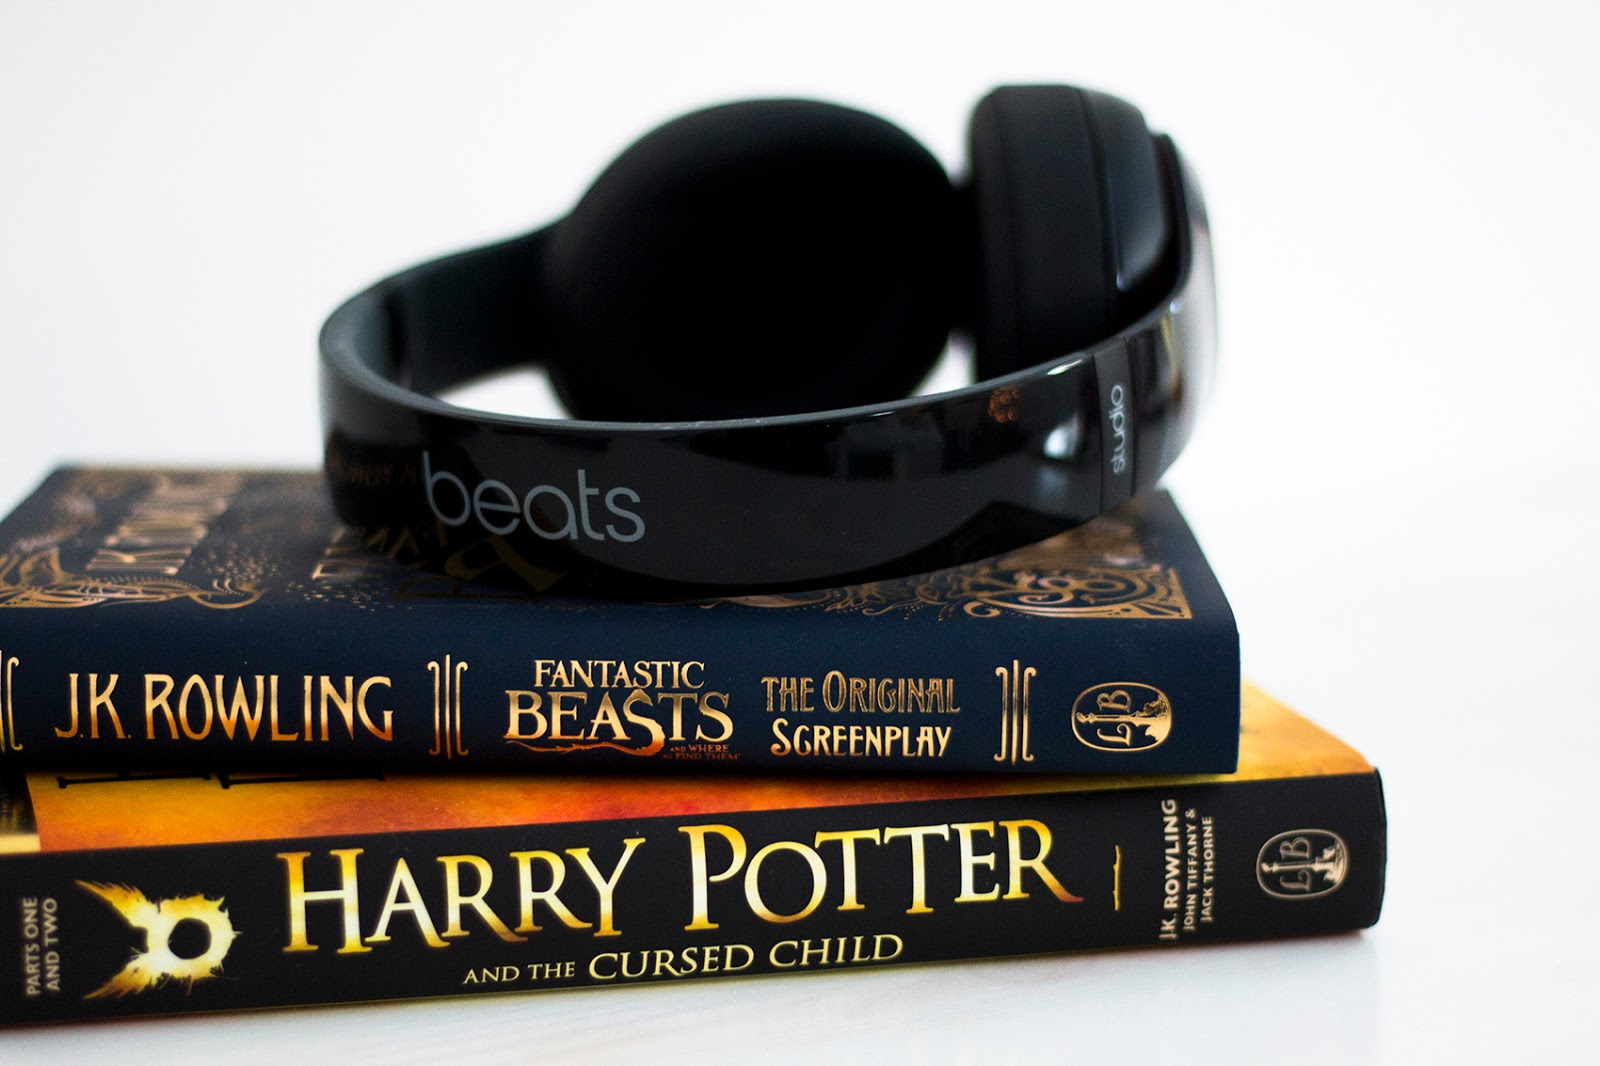 Beats headphones and books